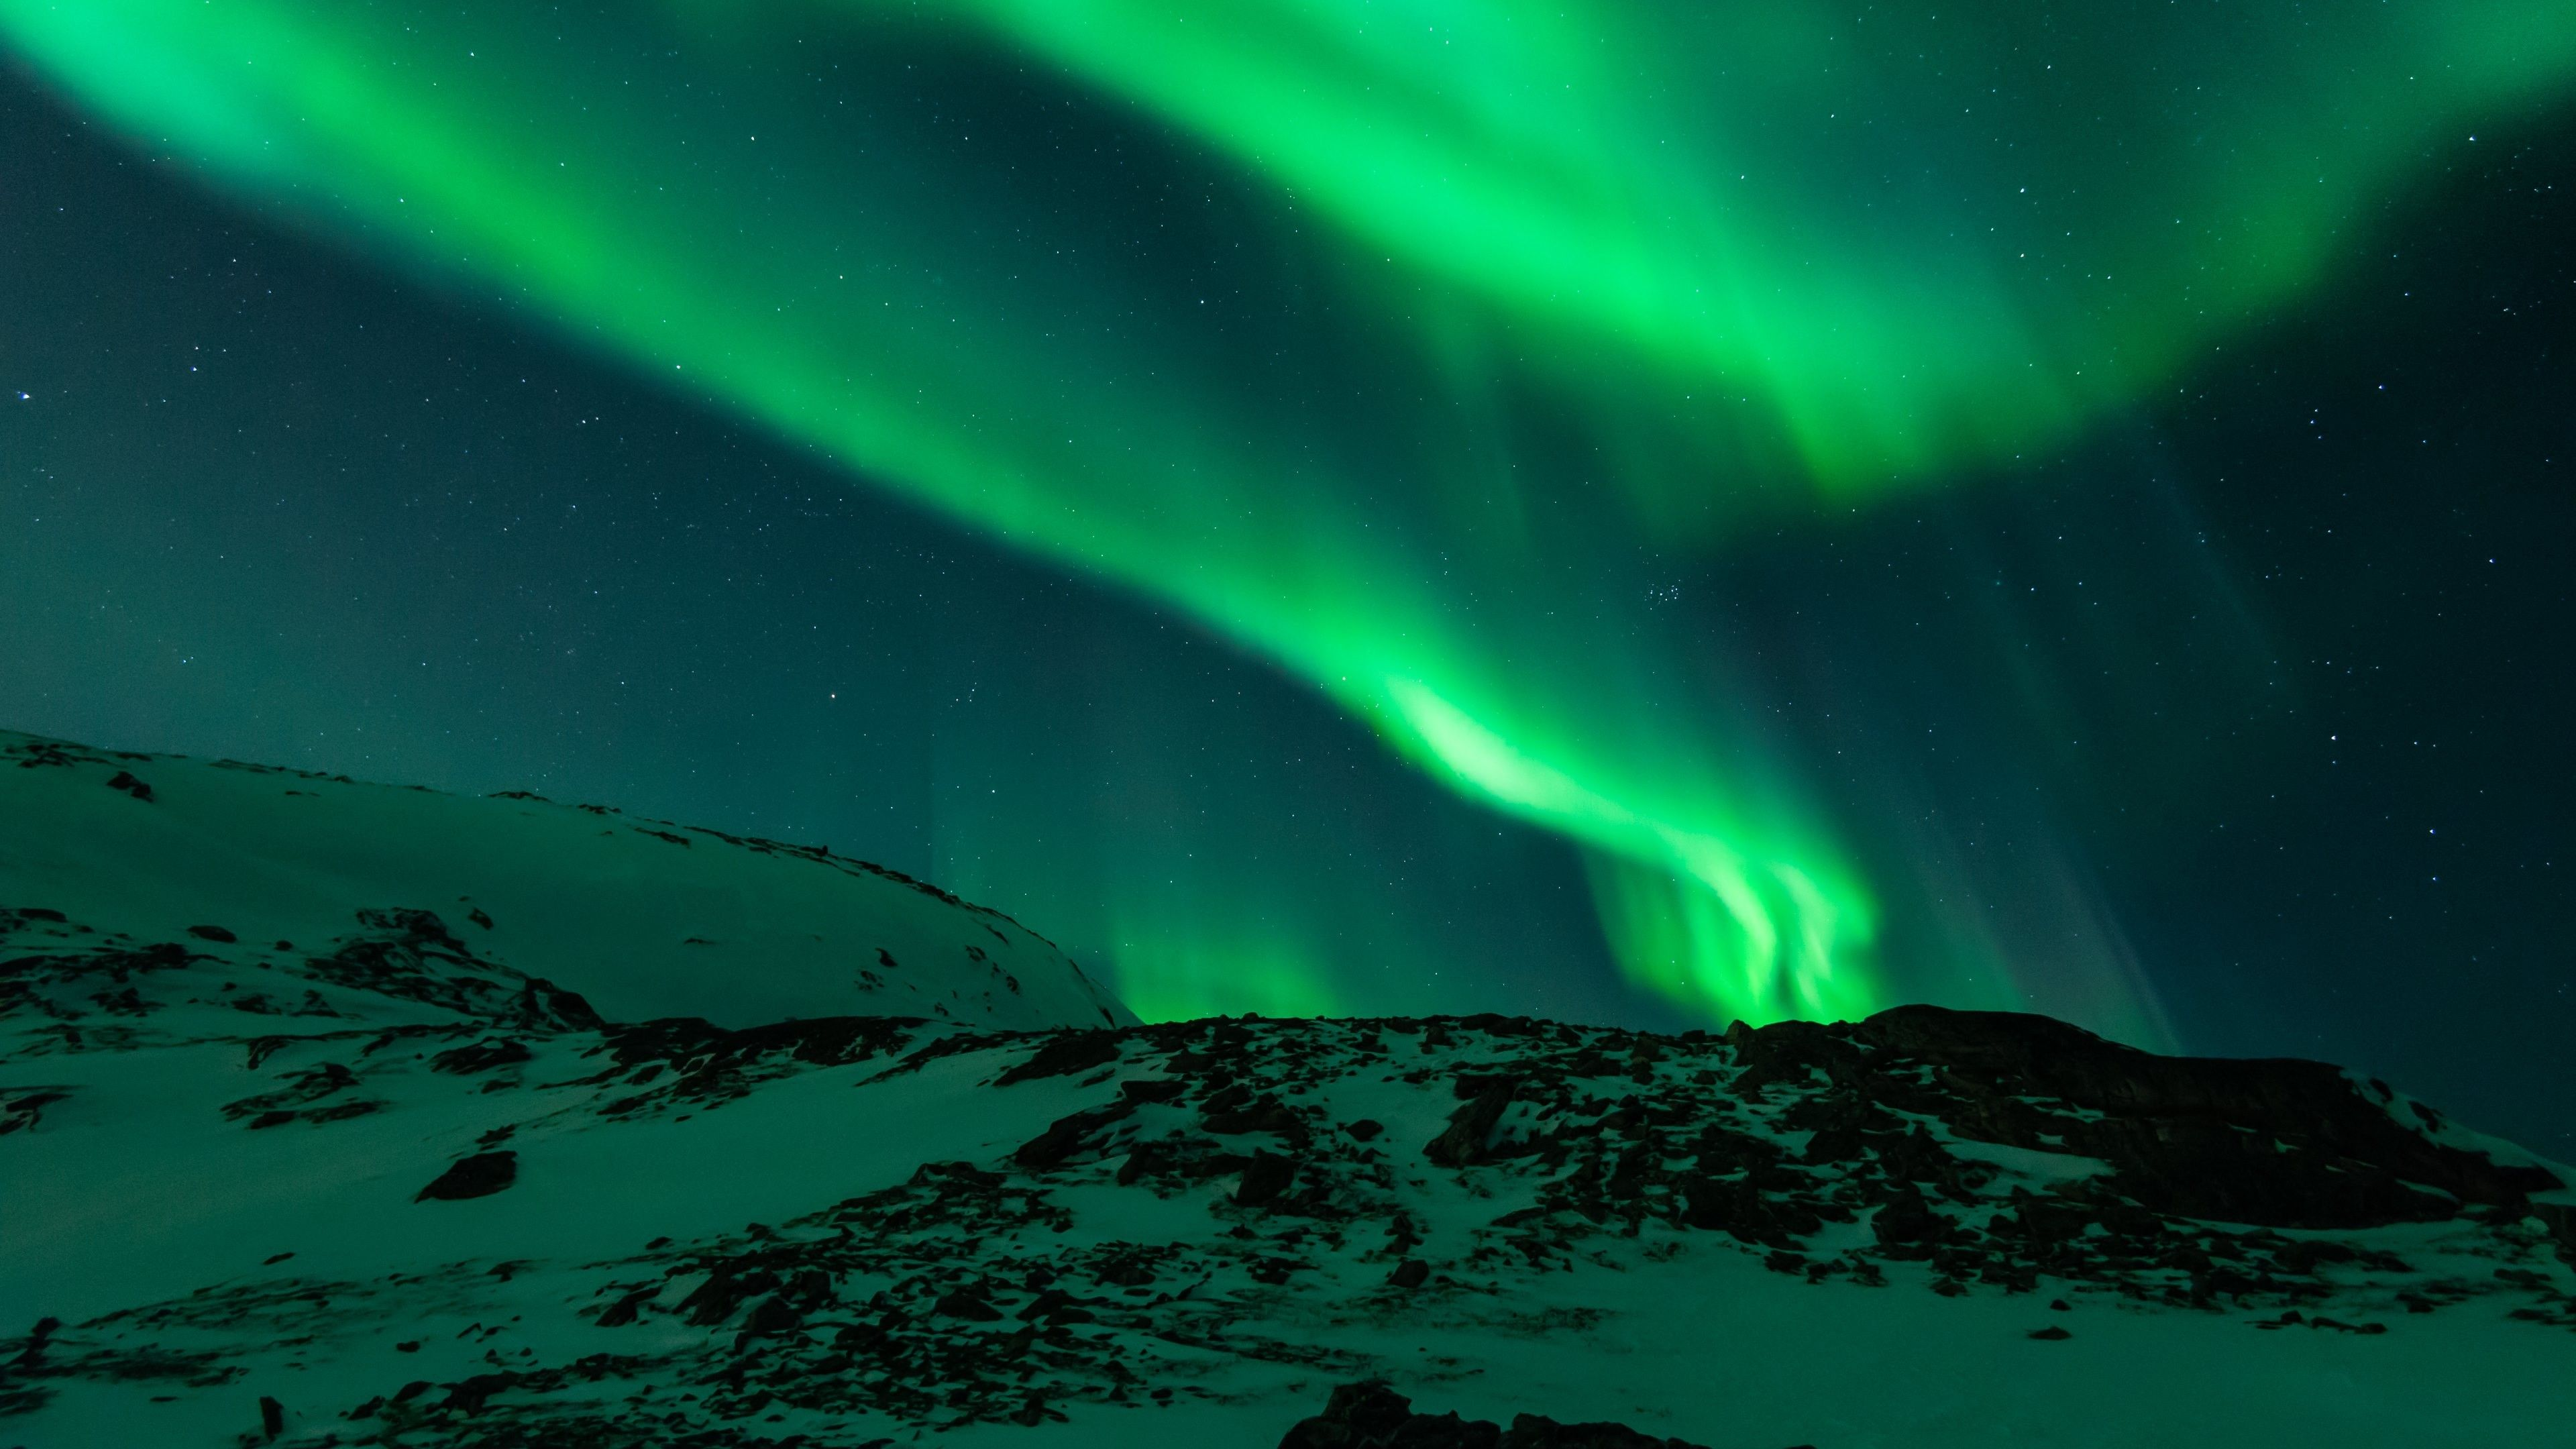 3840x2160 4k Ultra High Definition Hd 3840x2160 Hanya Aurora Borealis Beautiful Wallpapers Background Pictures